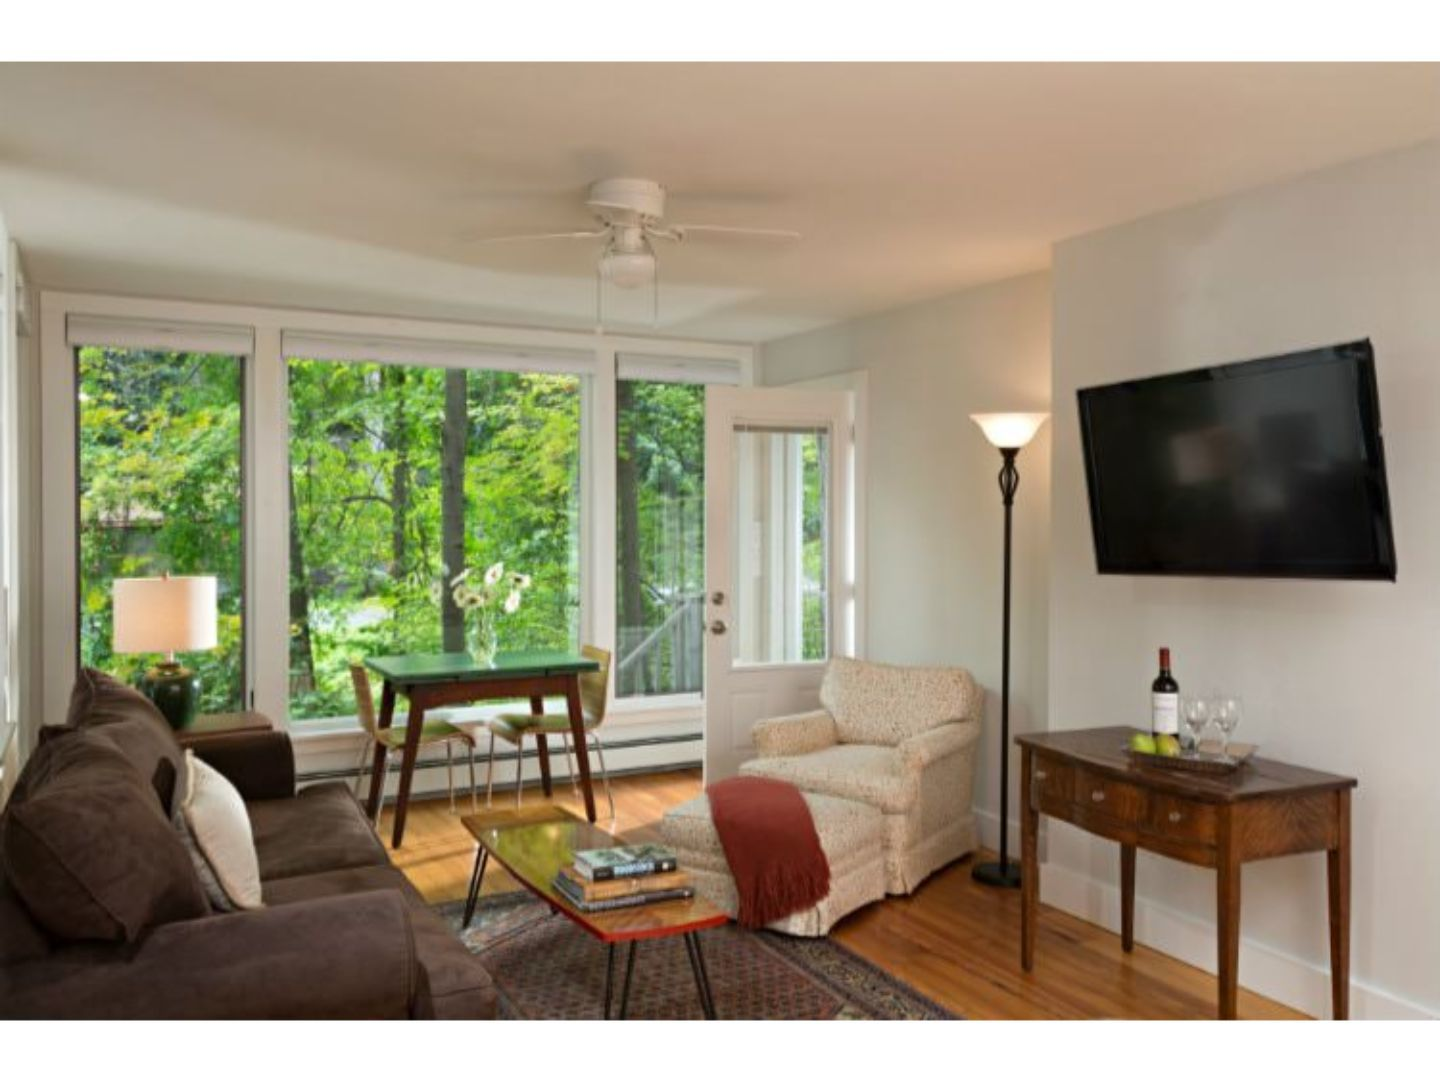 A living room filled with furniture and a large window at The Woodstock Inn on The Millstream.